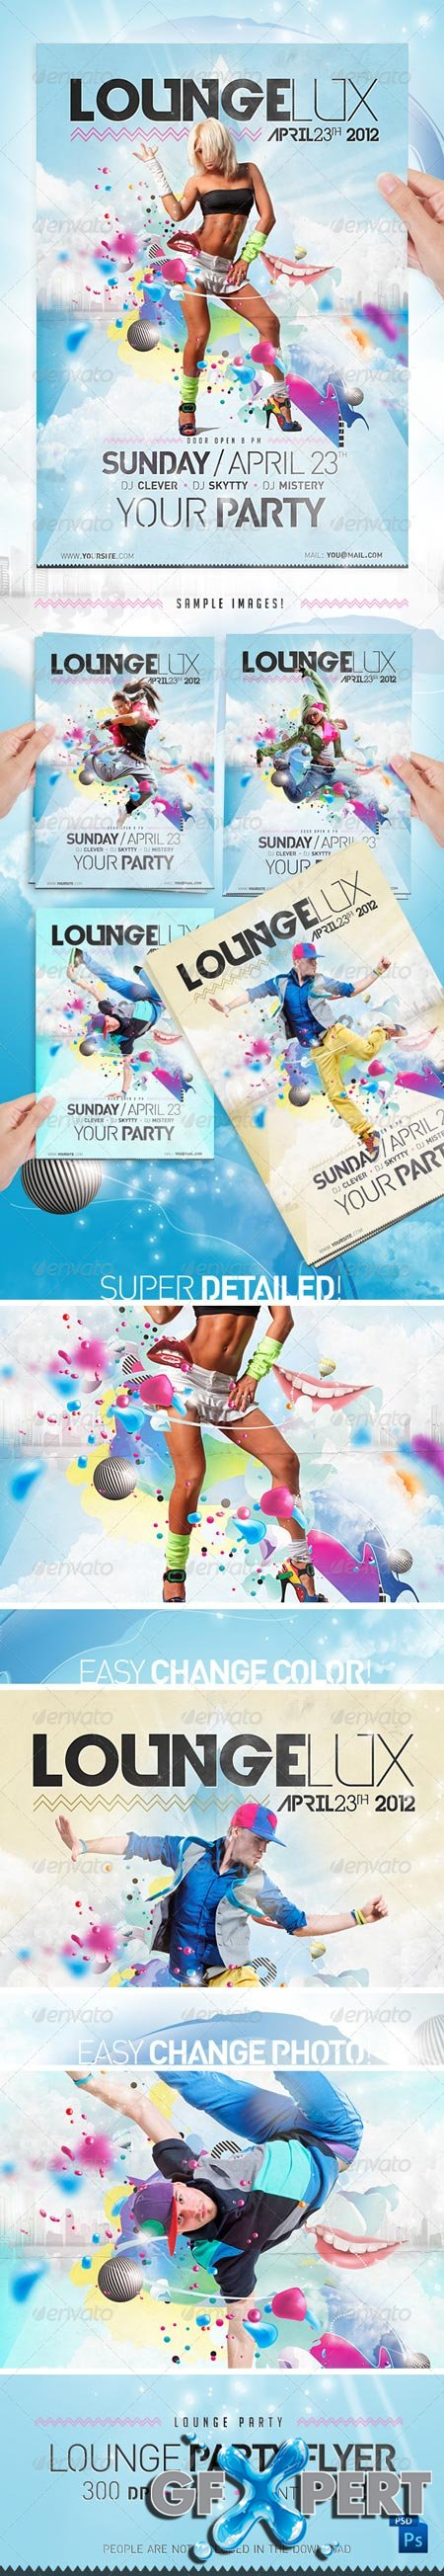 Lounge Party Flyer Template 1302898